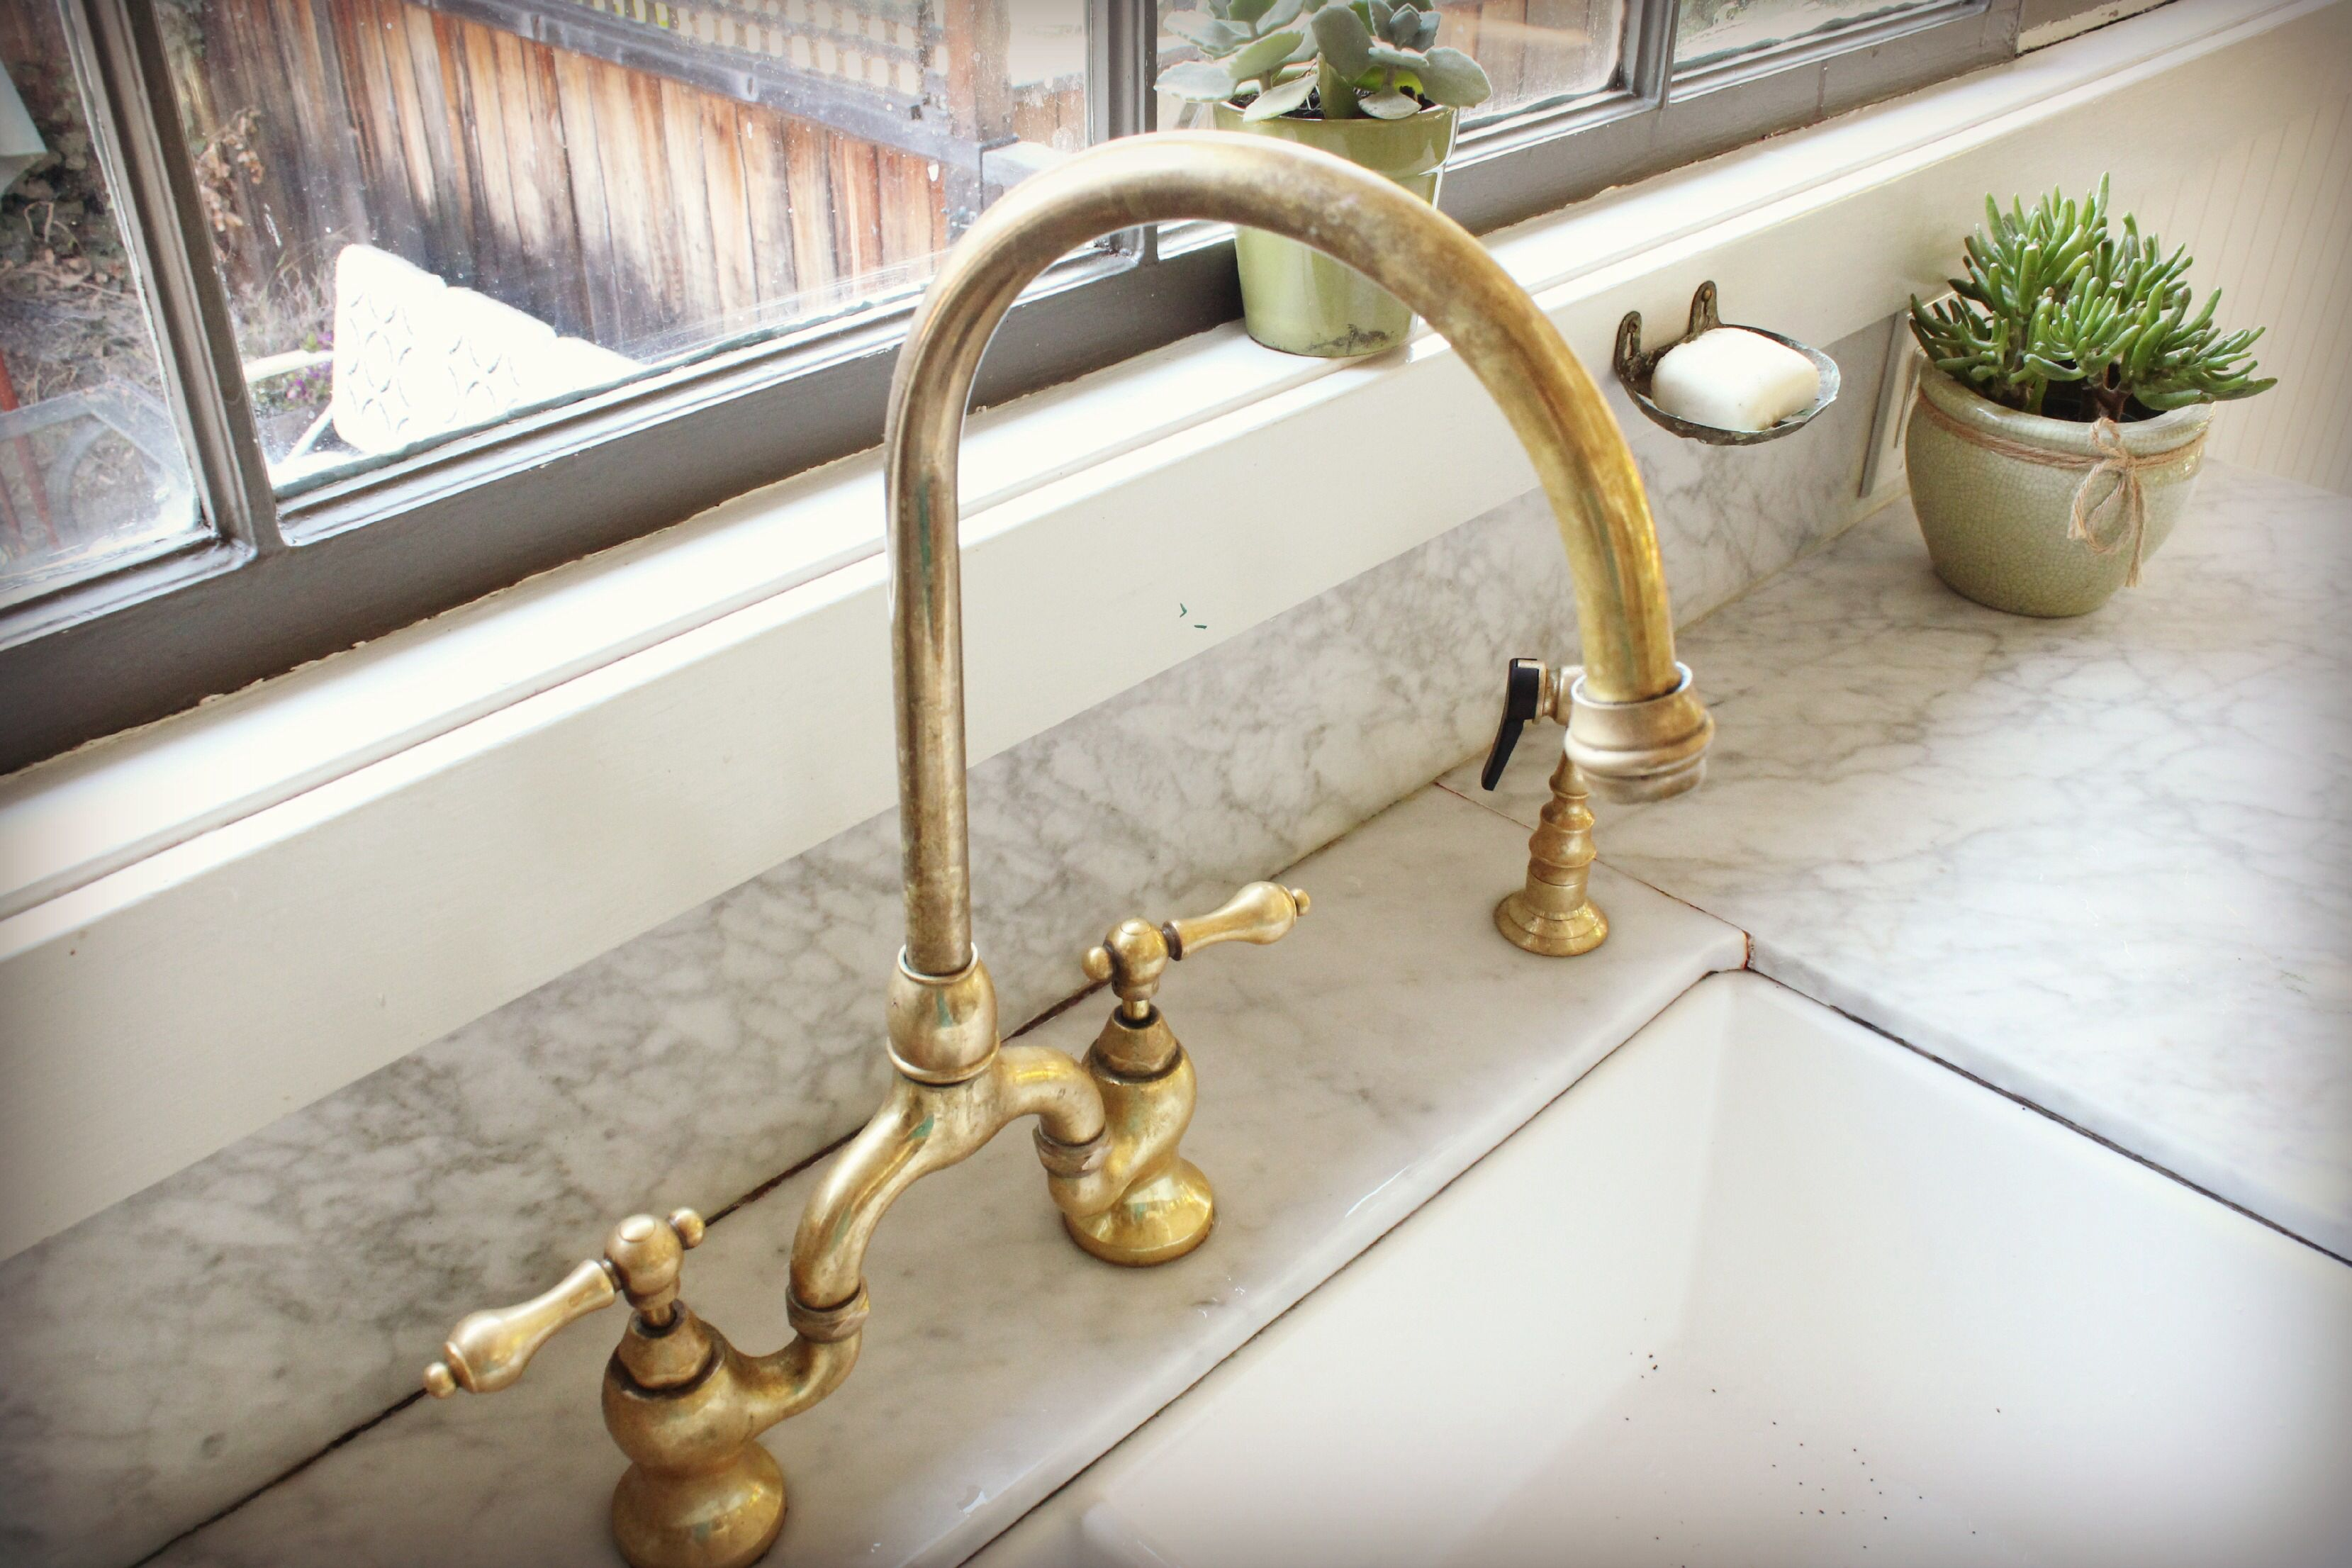 Unlacquered brass bridge faucet | Renovation | Pinterest | Faucet ...